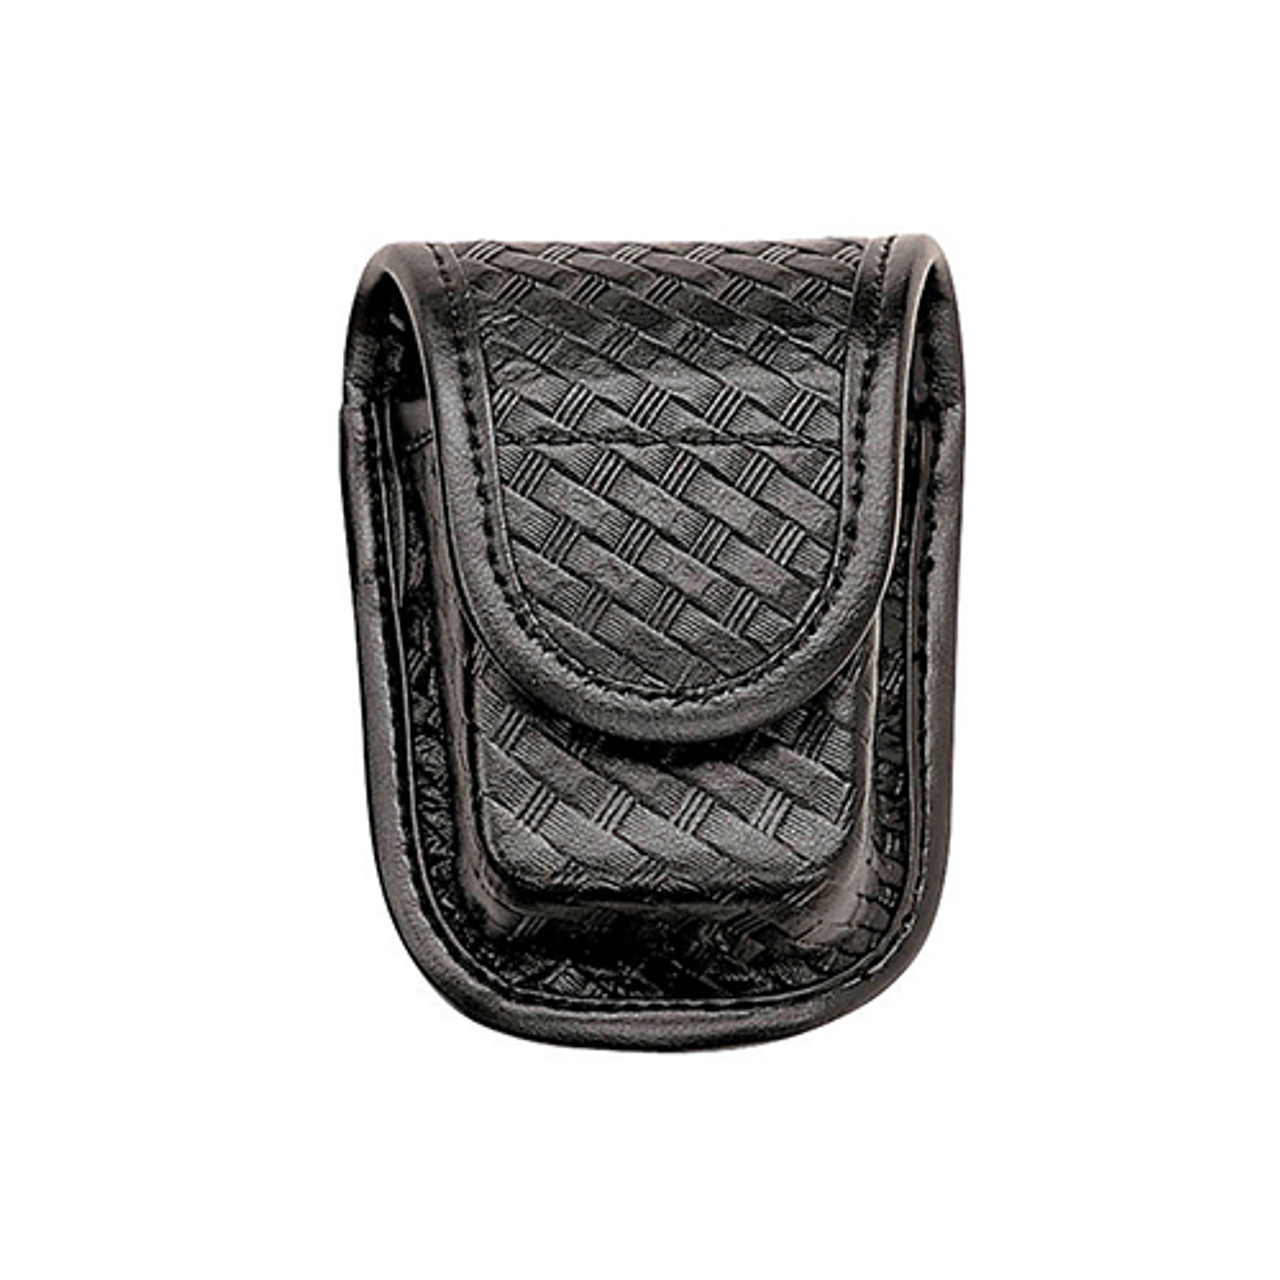 Basketweave Black Bianchi Accumold Elite Chrome Snap 7915 Pager or Glove Pouch